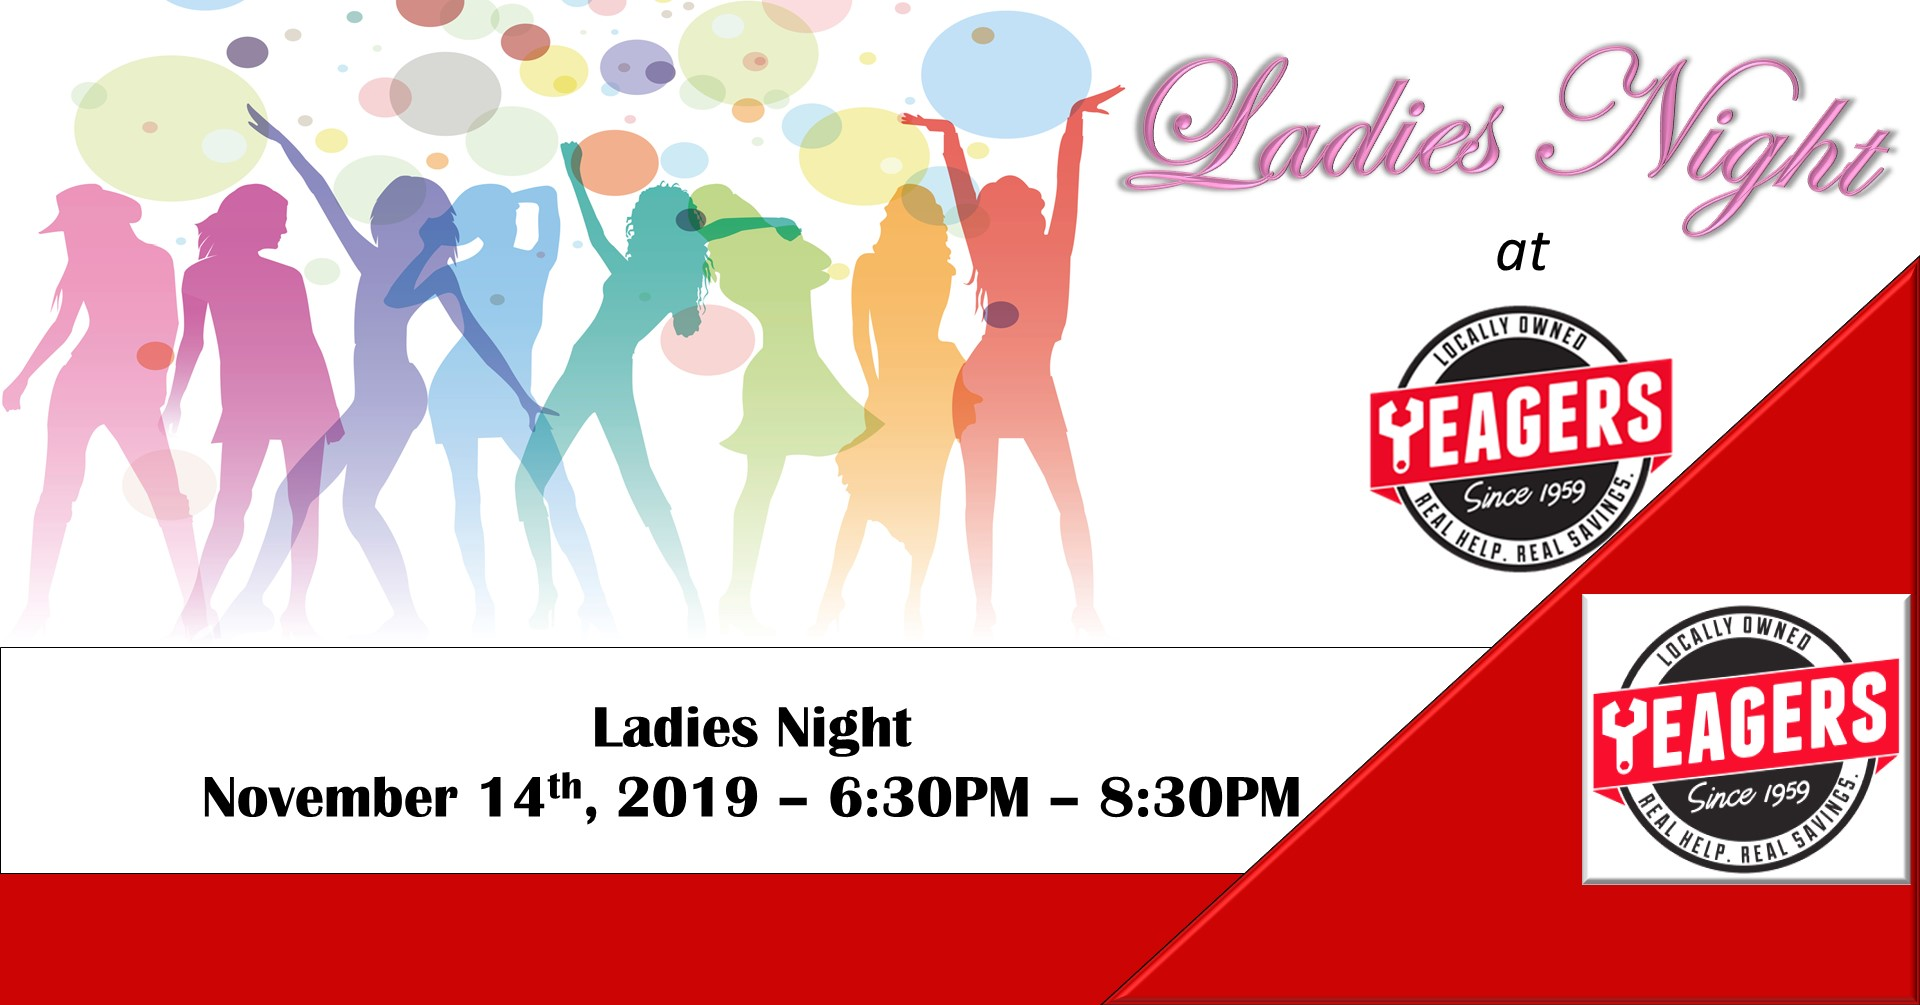 Ladies Night on November 14 from 6:30PM – 8:30PM